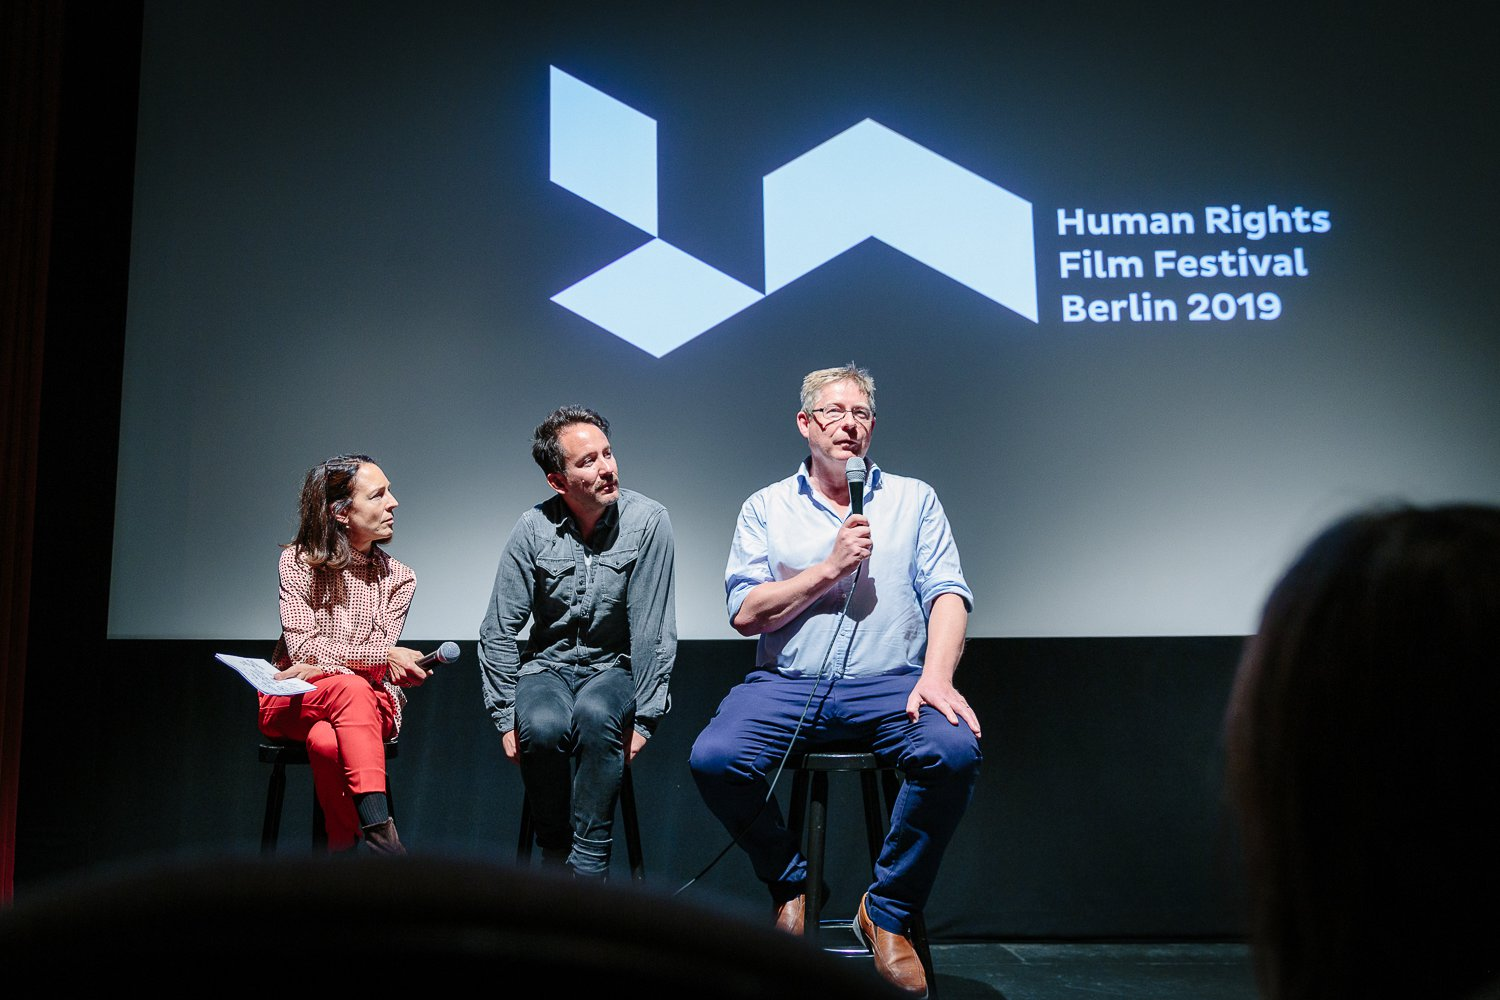 2019-EVENT-Save the Children_HRFFB © Andreas Bohlender_webres-5815.jpg